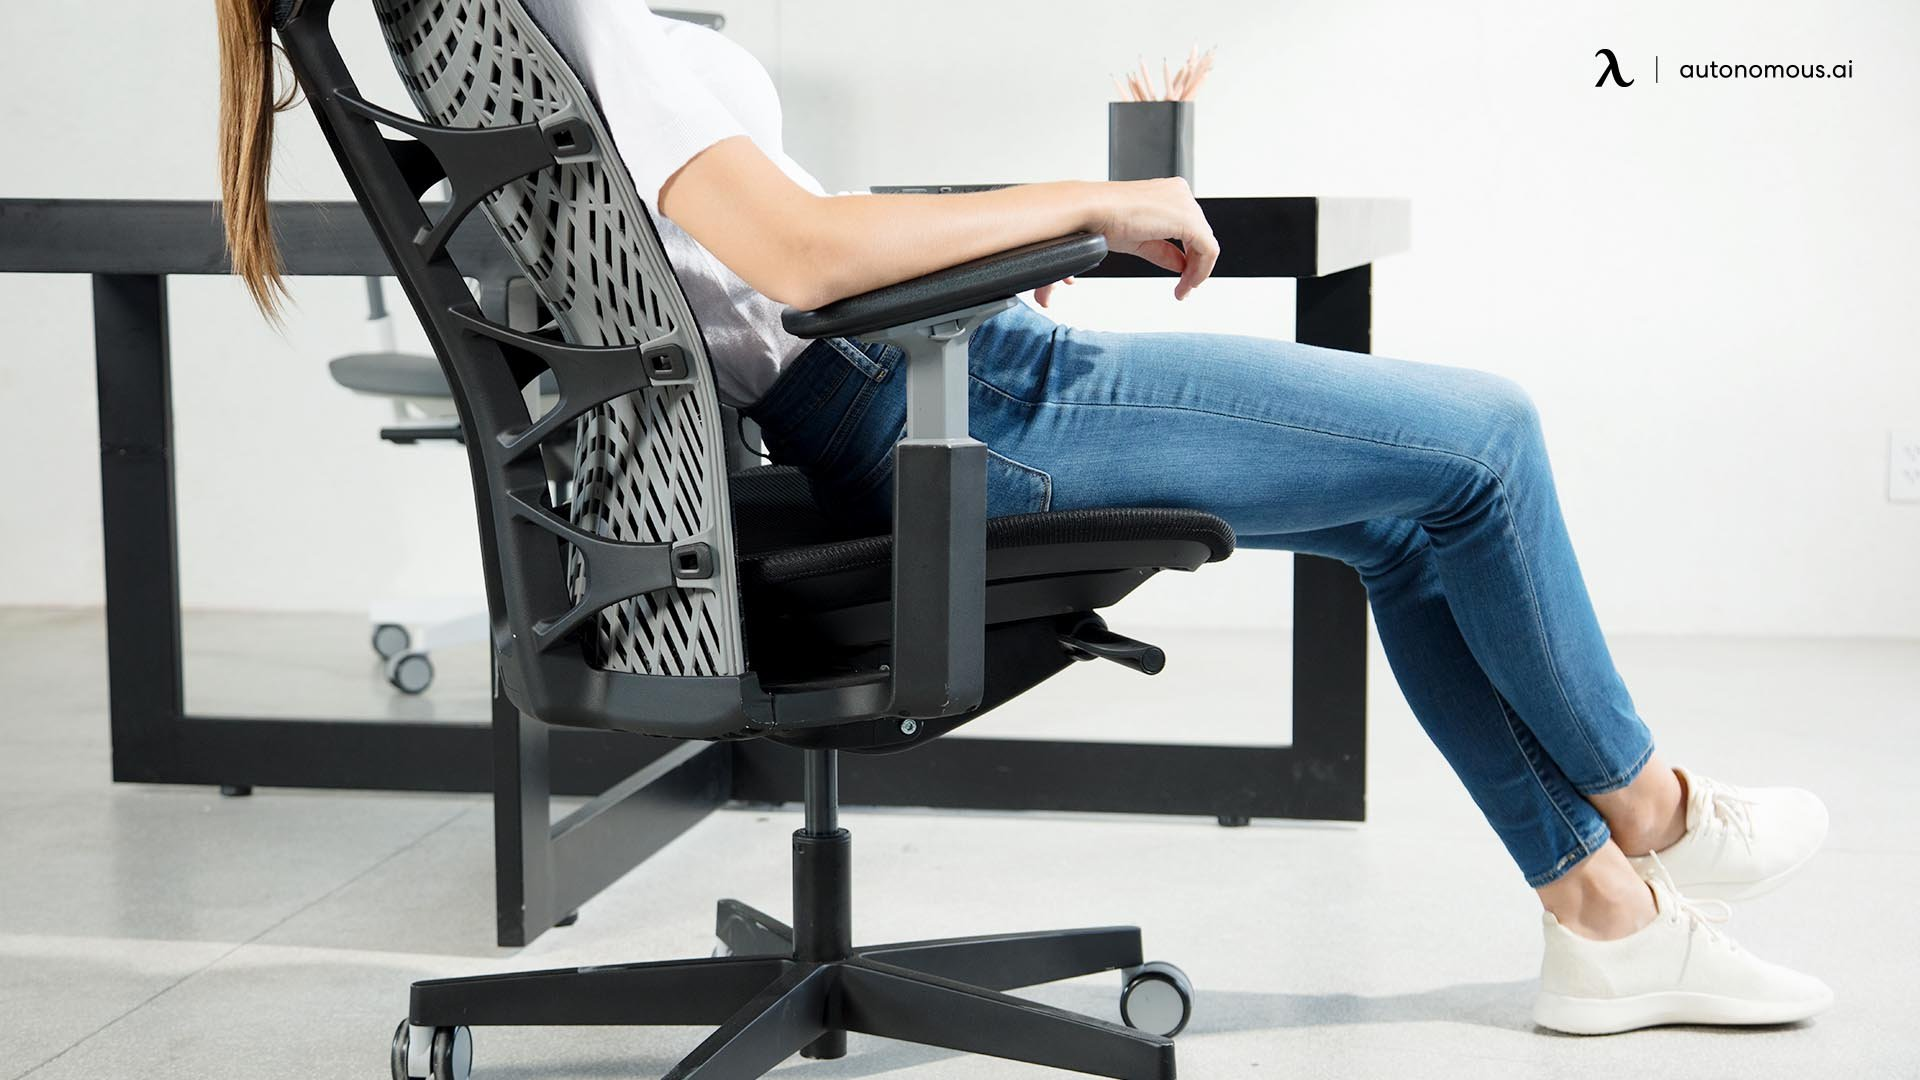 Reclining and Tilting Function